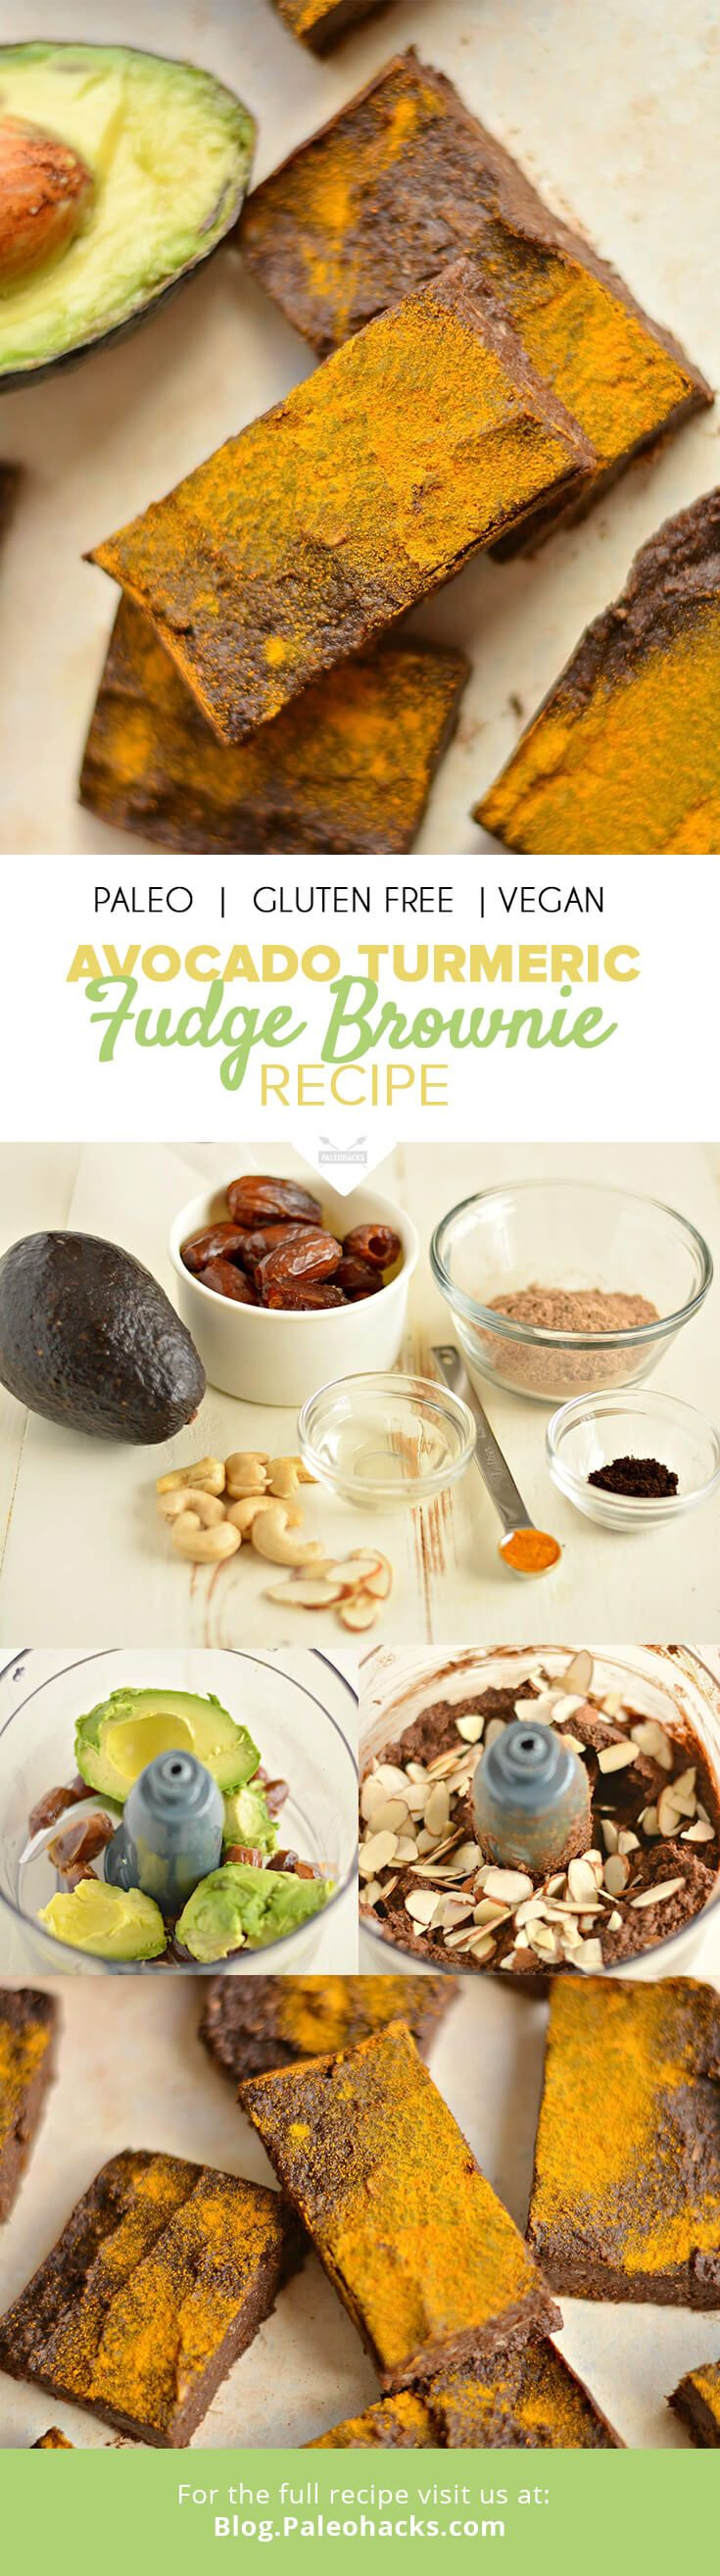 his Avocado Turmeric Fudge Brownie recipe is packed with immunity-boosting ingredients. A healthy way to satisfy a chocolate craving! For the full recipe, visit us here: http://paleo.co/fudgebrowniercp